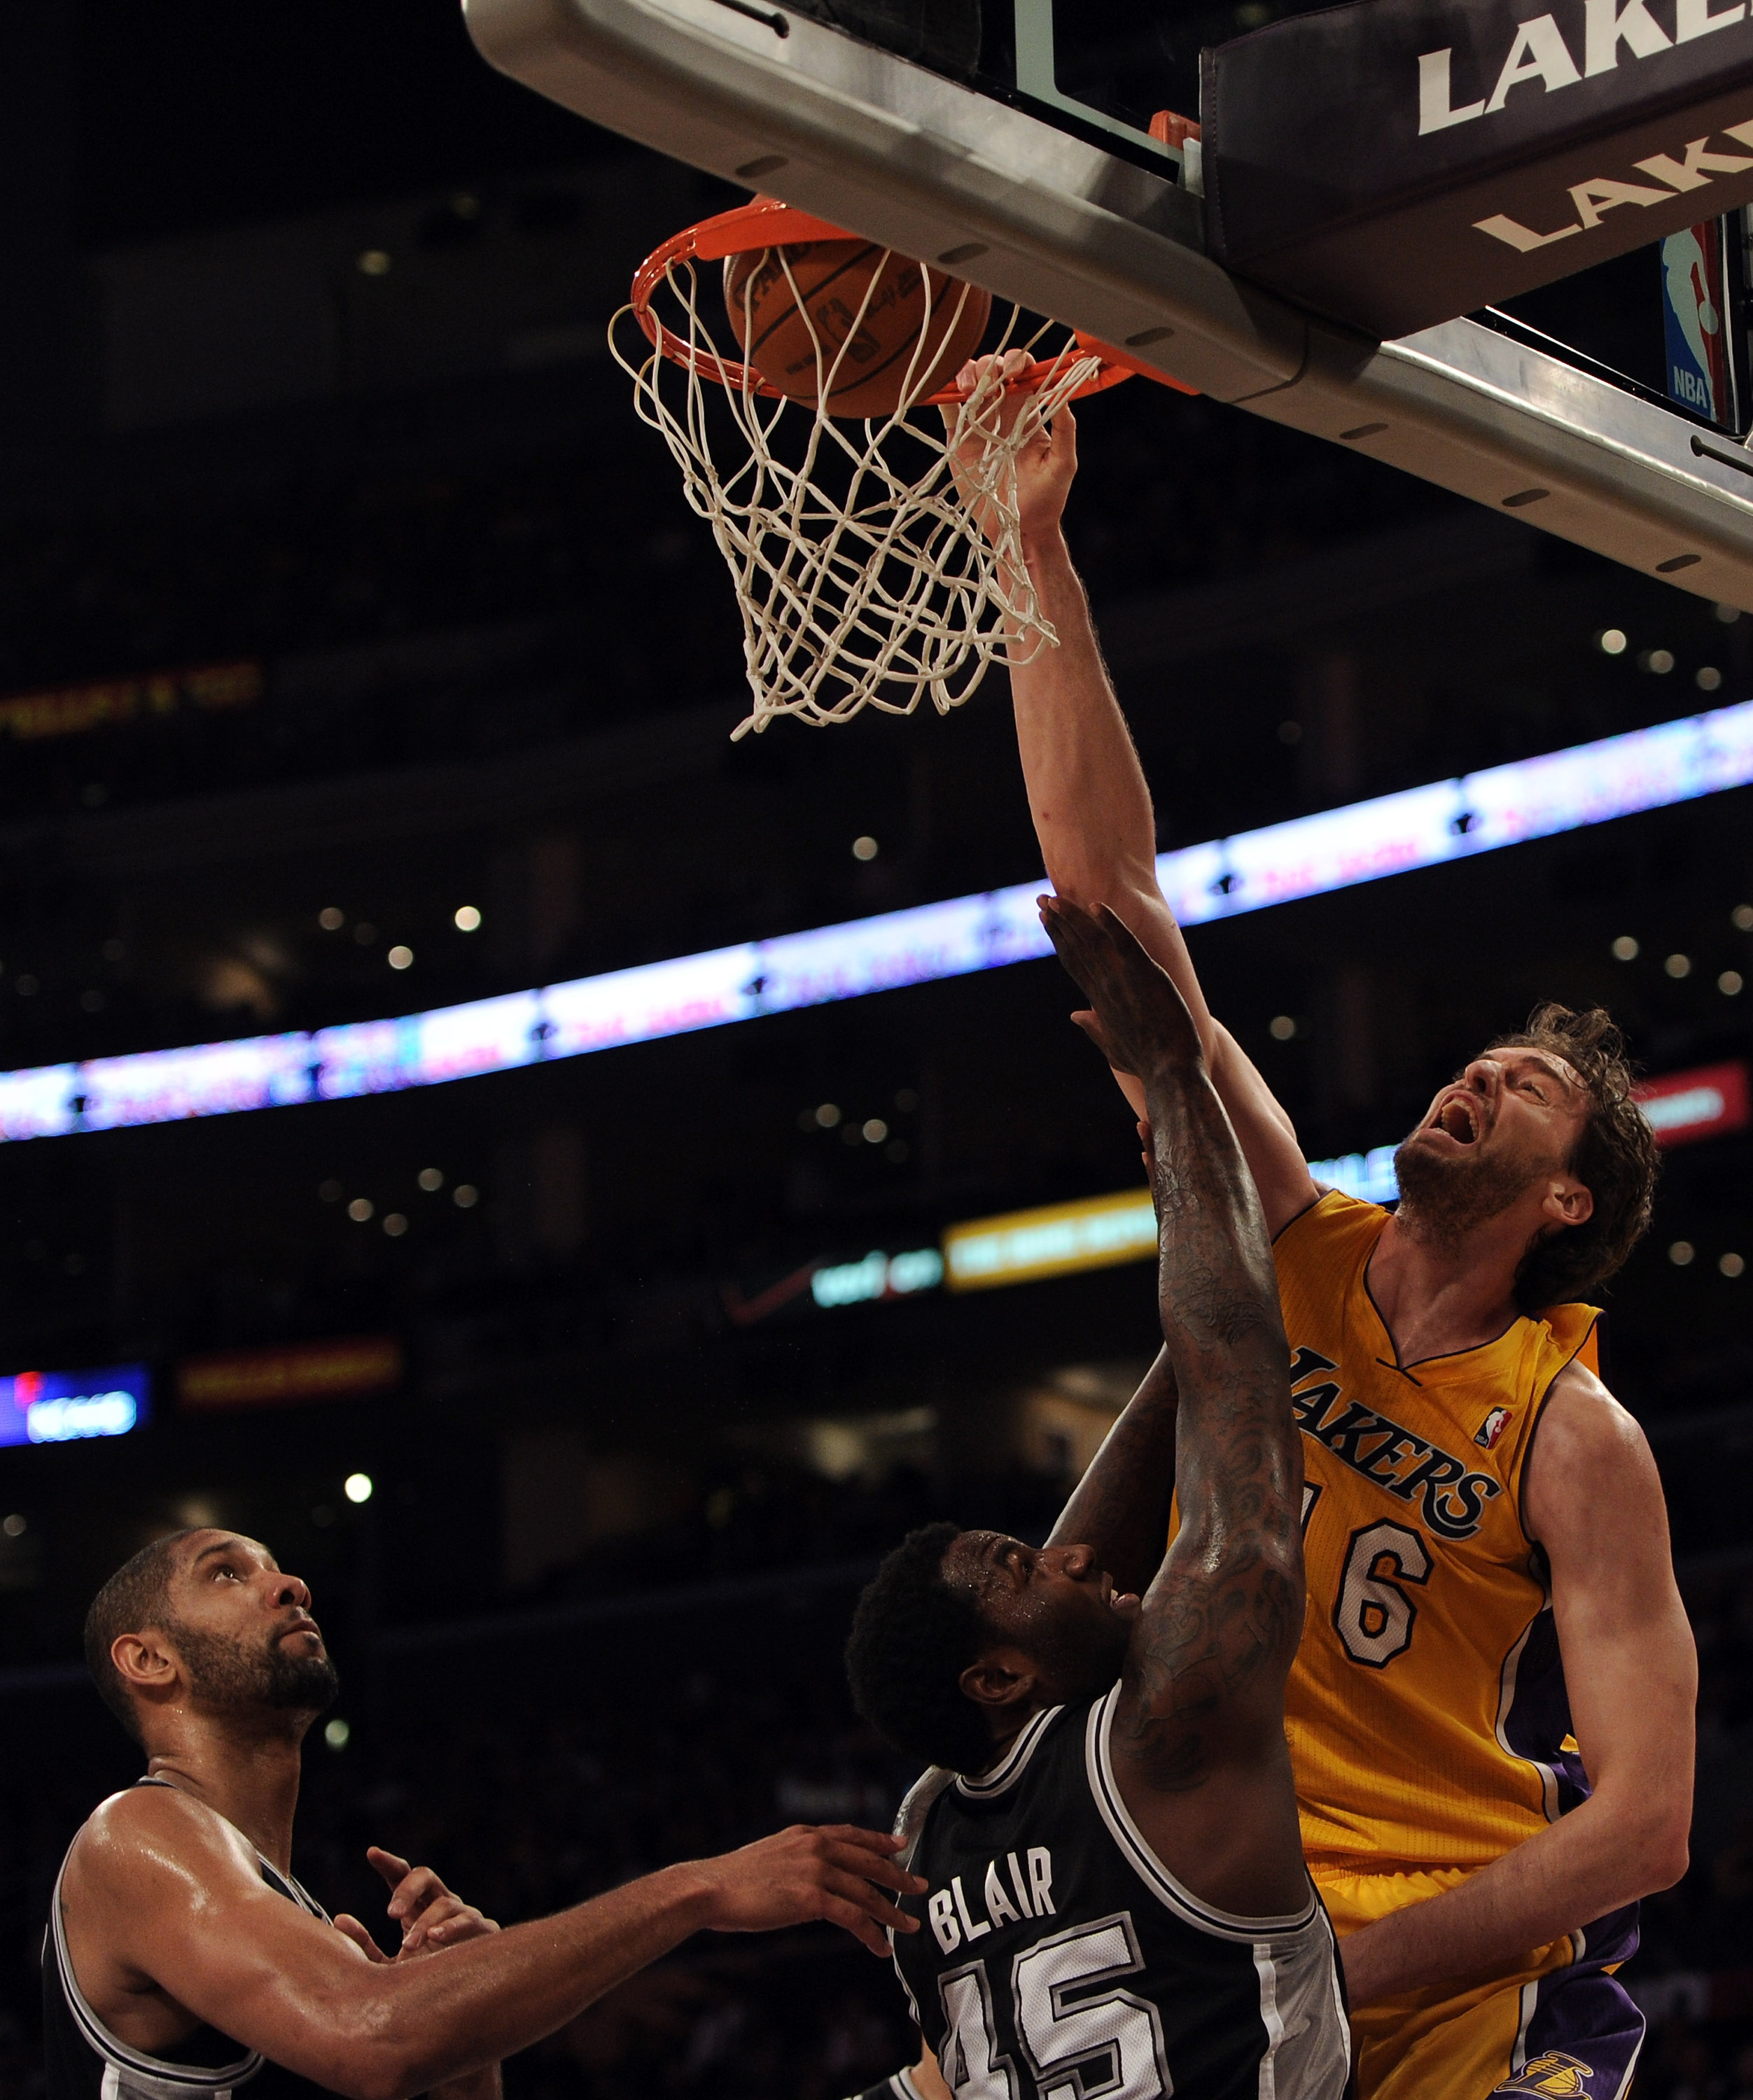 LOS ANGELES, CA - FEBRUARY 03:  Pau Gasol #16 of the Los Angeles Lakers dunks in front of DeJuan Blair #45 and Tim Duncan #21 of the San Antonio Spurs at Staples Center on February 3, 2011 in Los Angeles, California.  NOTE TO USER: User expressly acknowle